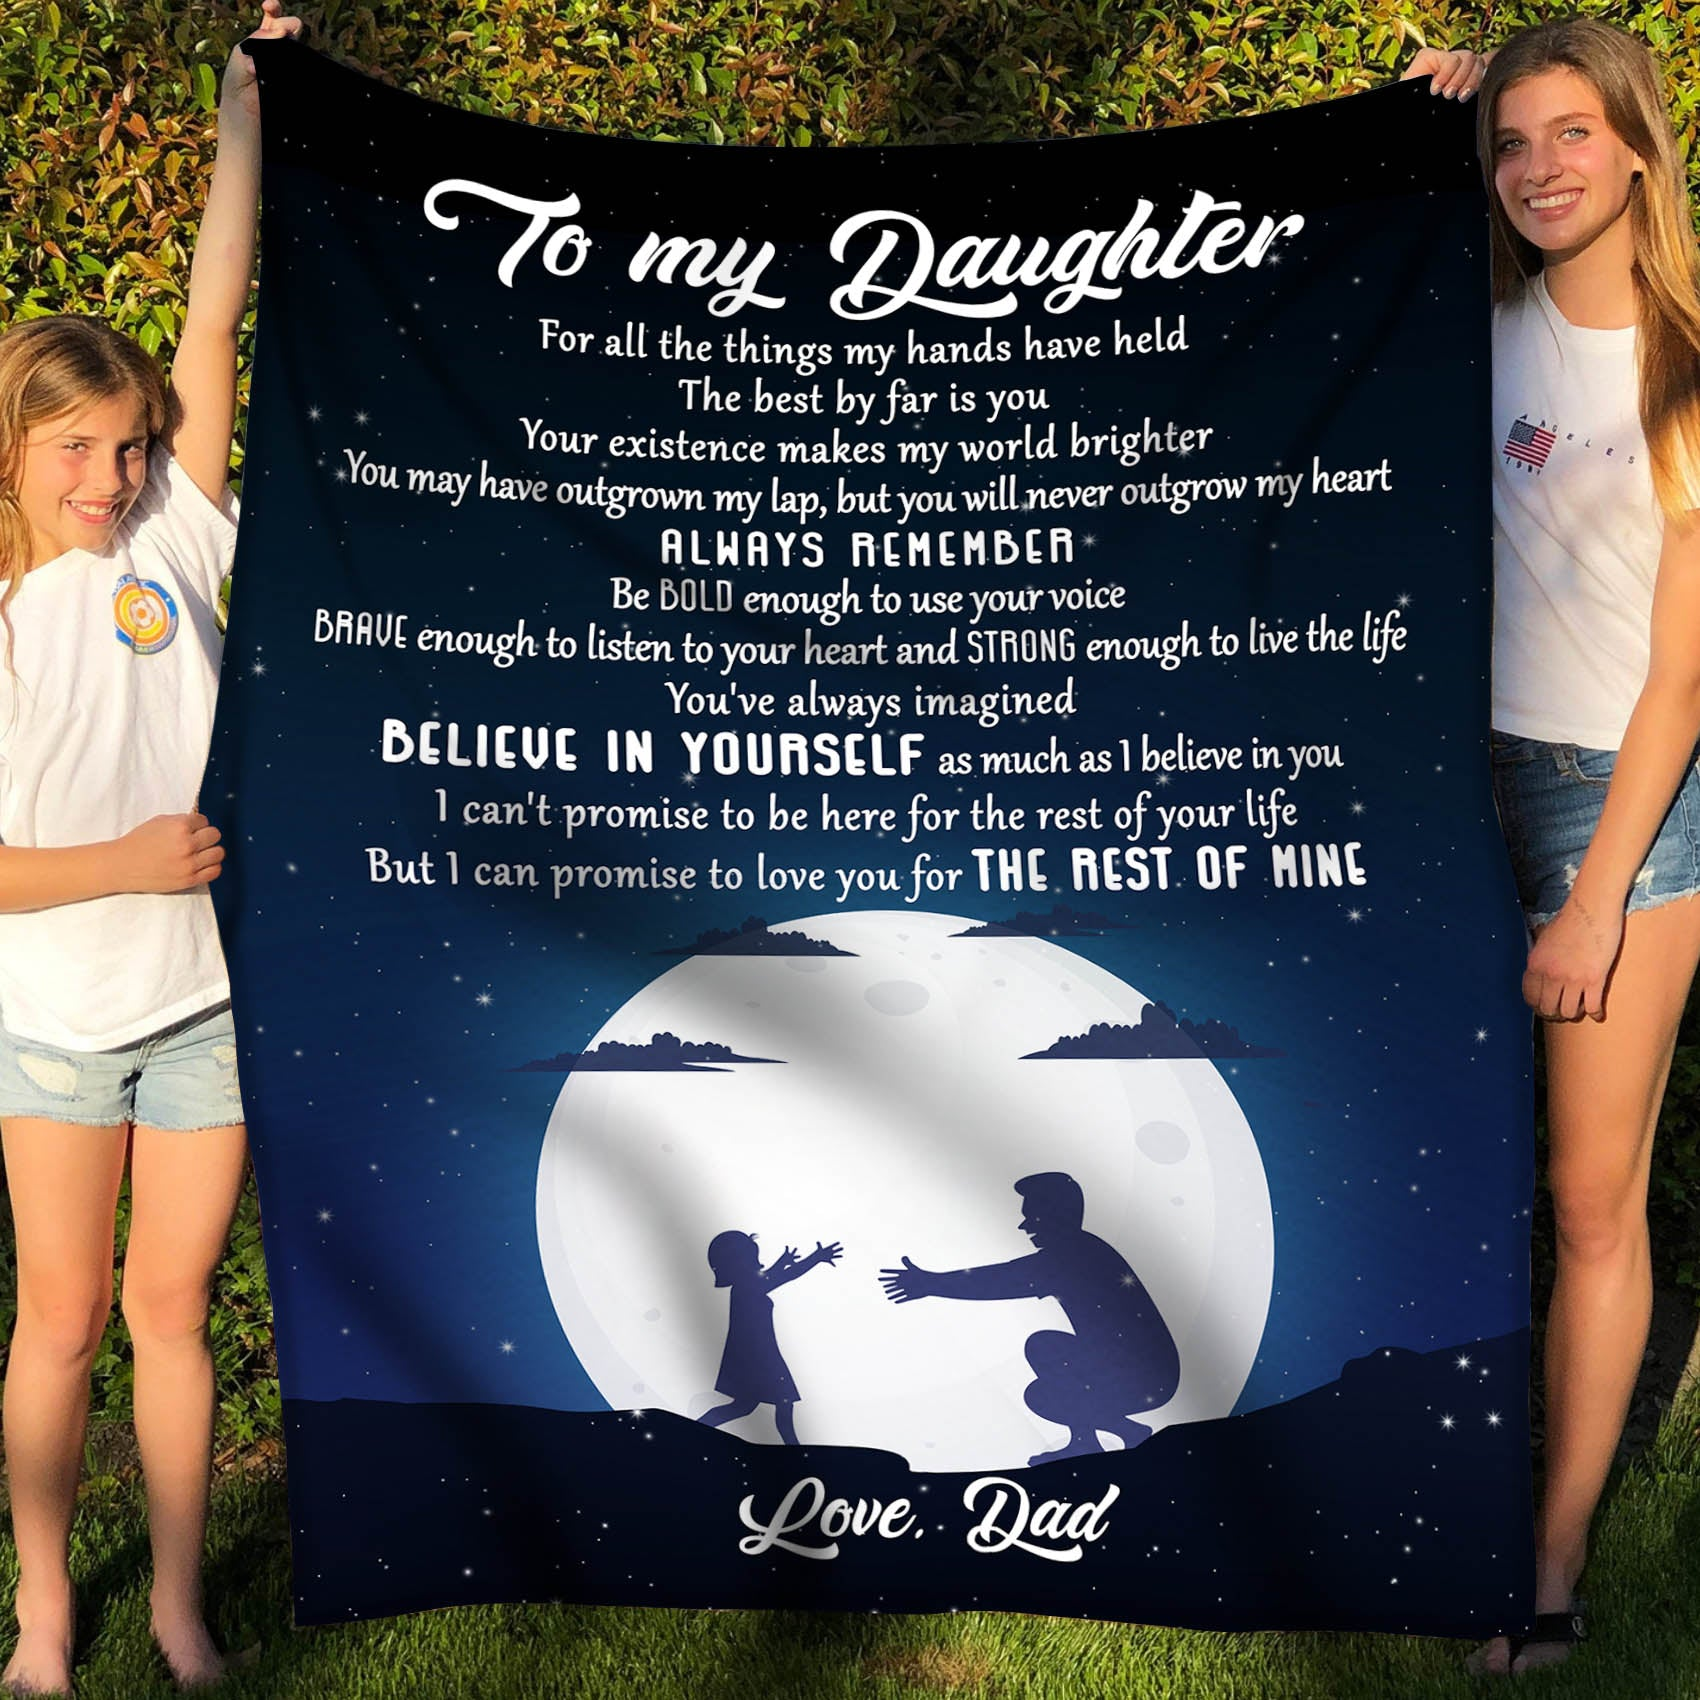 To my daughter fleece blanket - Believe in yourself - Gift for daughter from dad - Birthday gifts, blanket with quotes - 5863